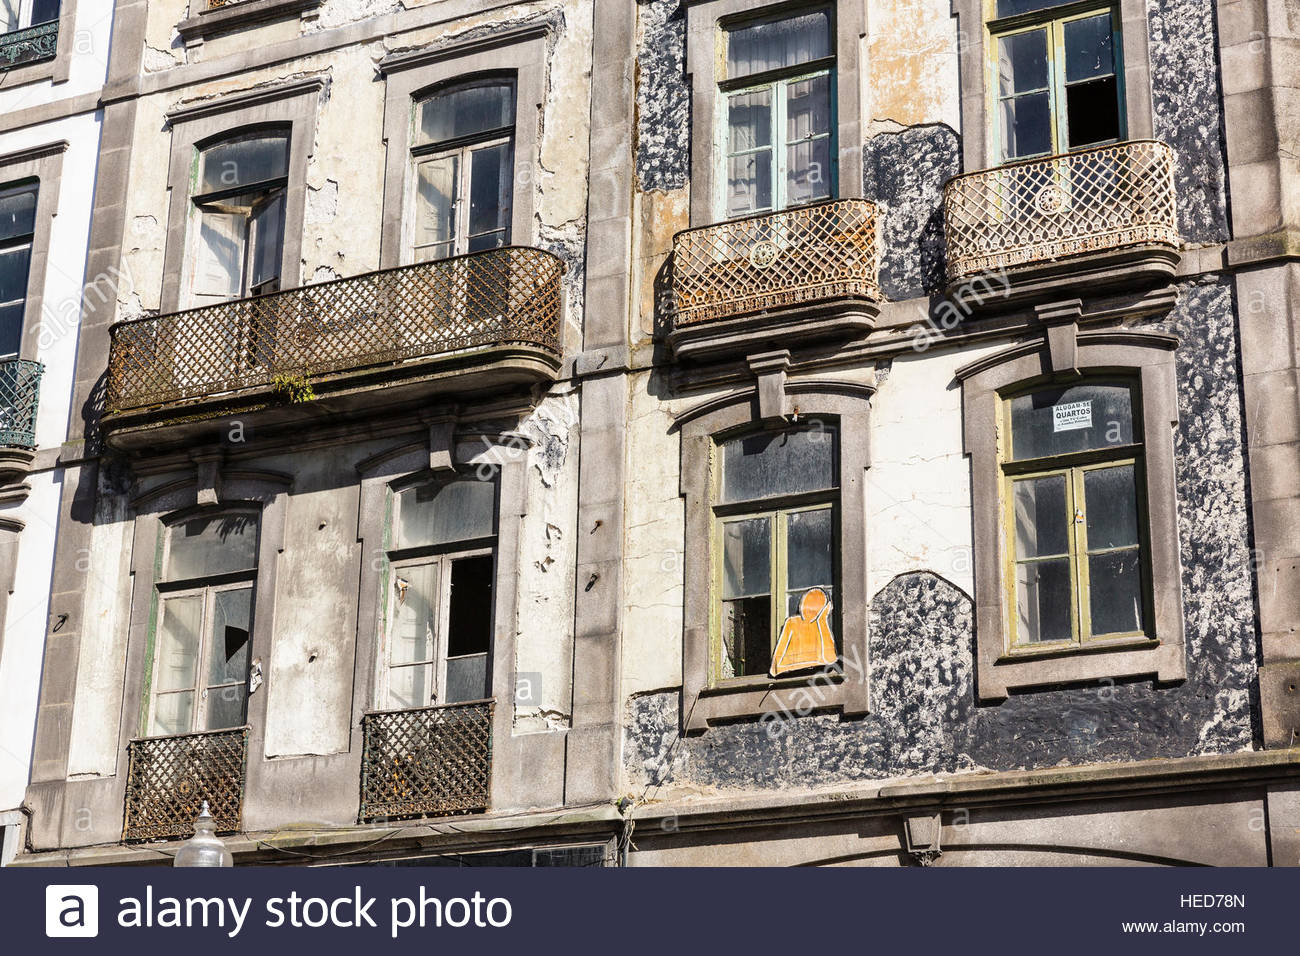 building,fassade,figure,humour,old,posture,ramshackle,residental,rundown,tourism,travel destination,UNESCO World - Stock Image